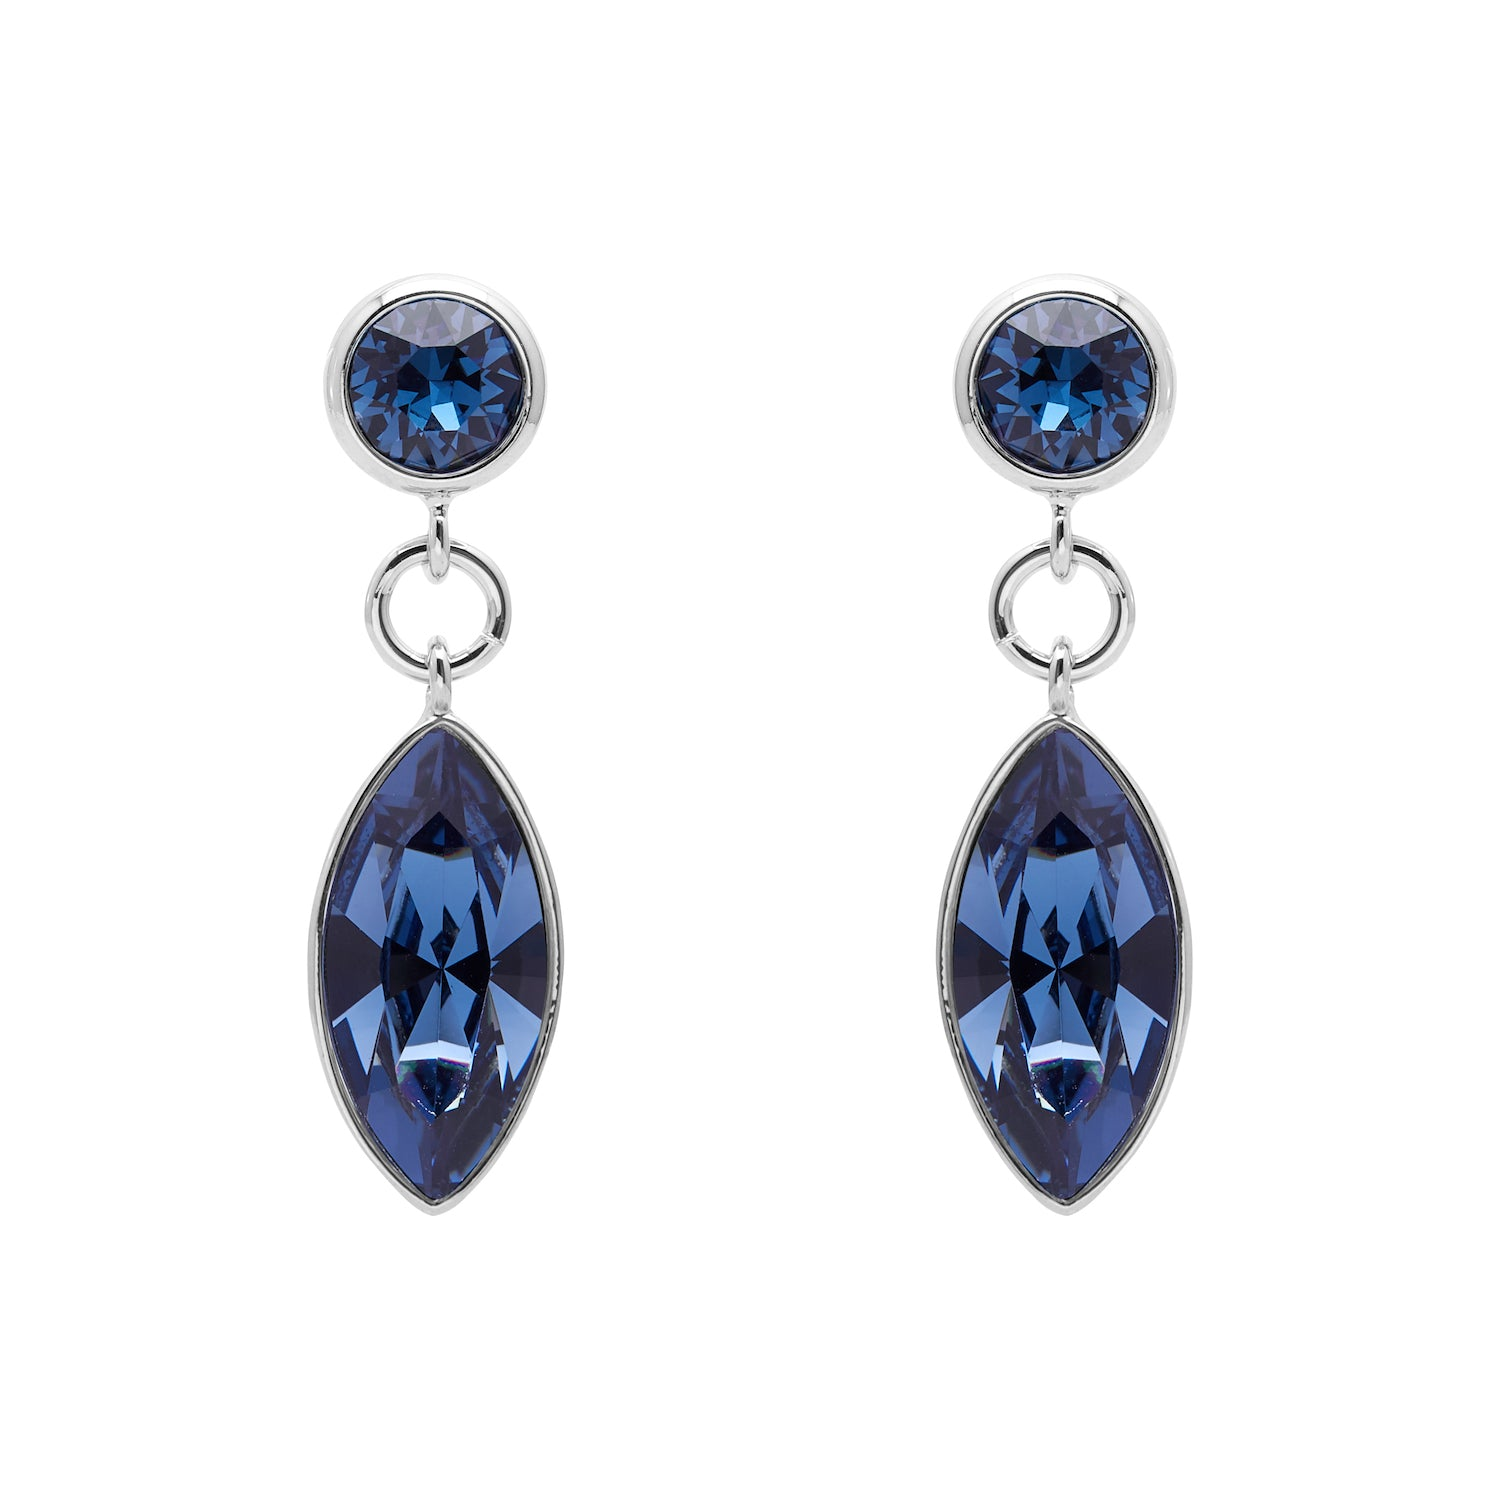 "Aura ""Chandelier"" 18k White Gold Plated Montana Swarovski Crystal Drop Earrings - Harpson Accessories"